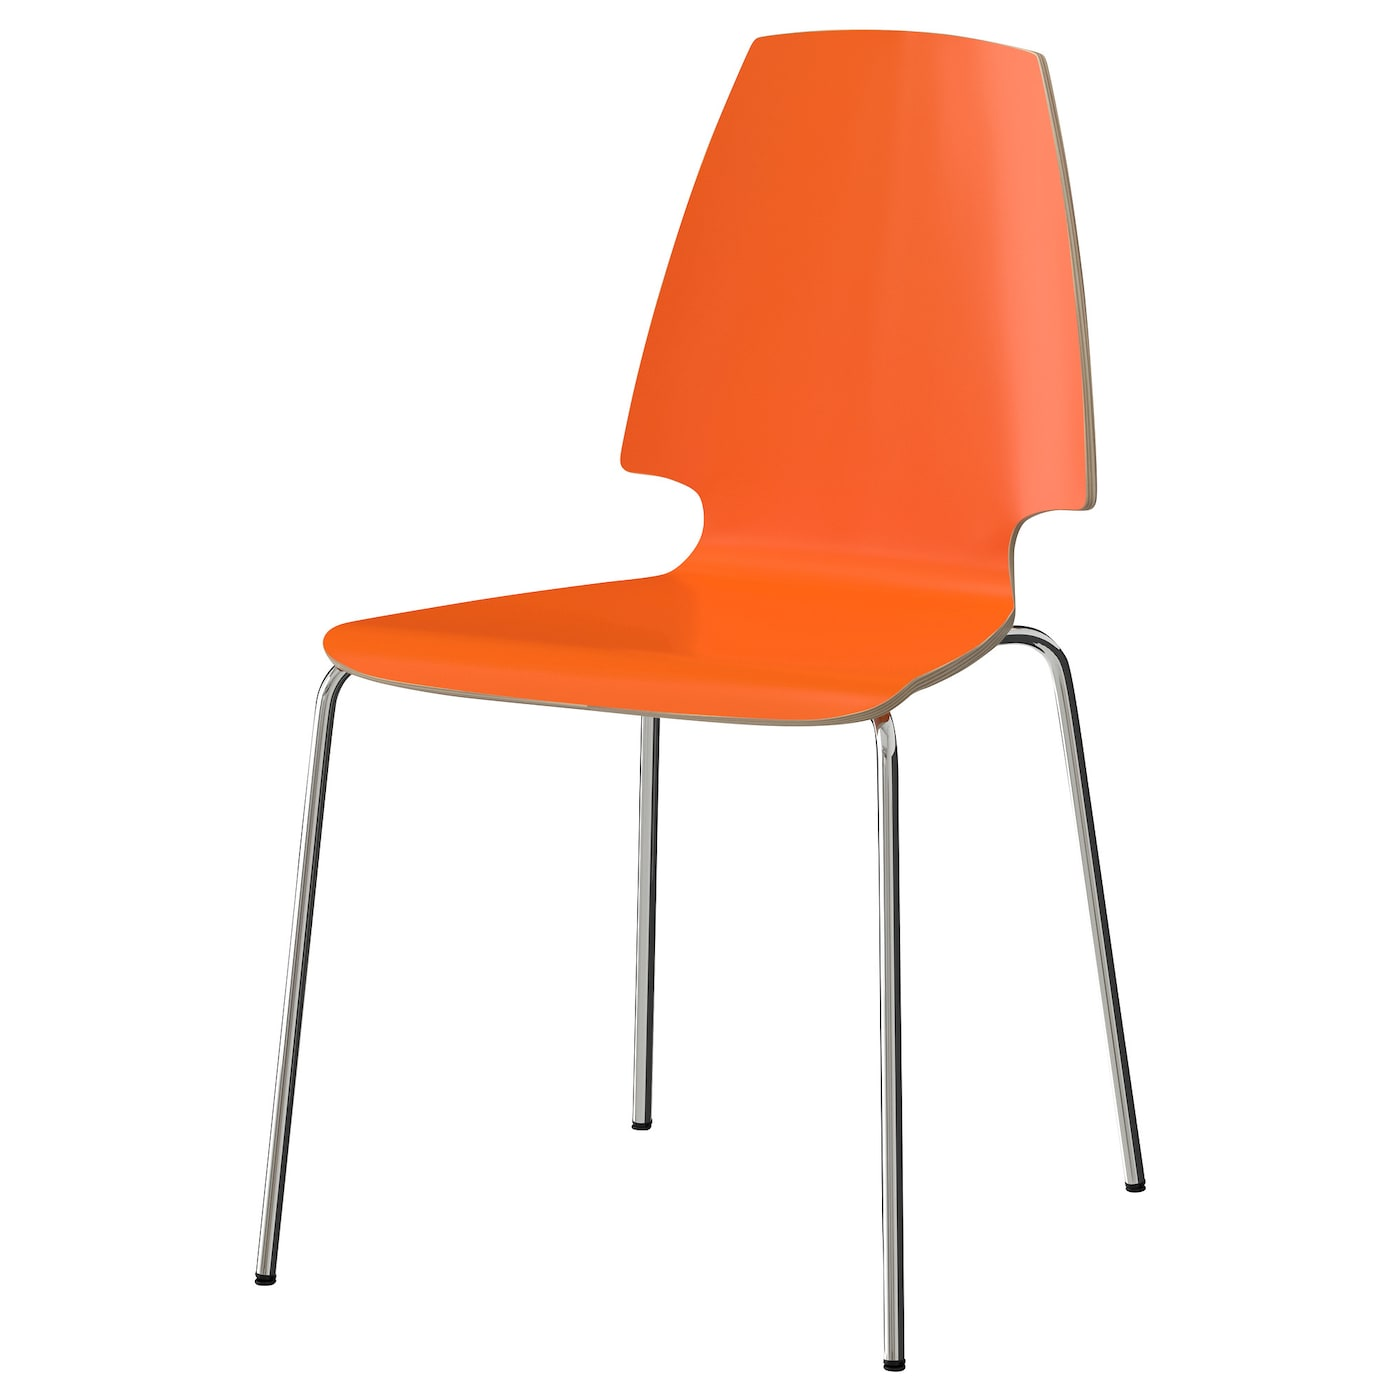 IKEA VILMAR chair The chair's melamine surface makes it durable and easy to keep clean.